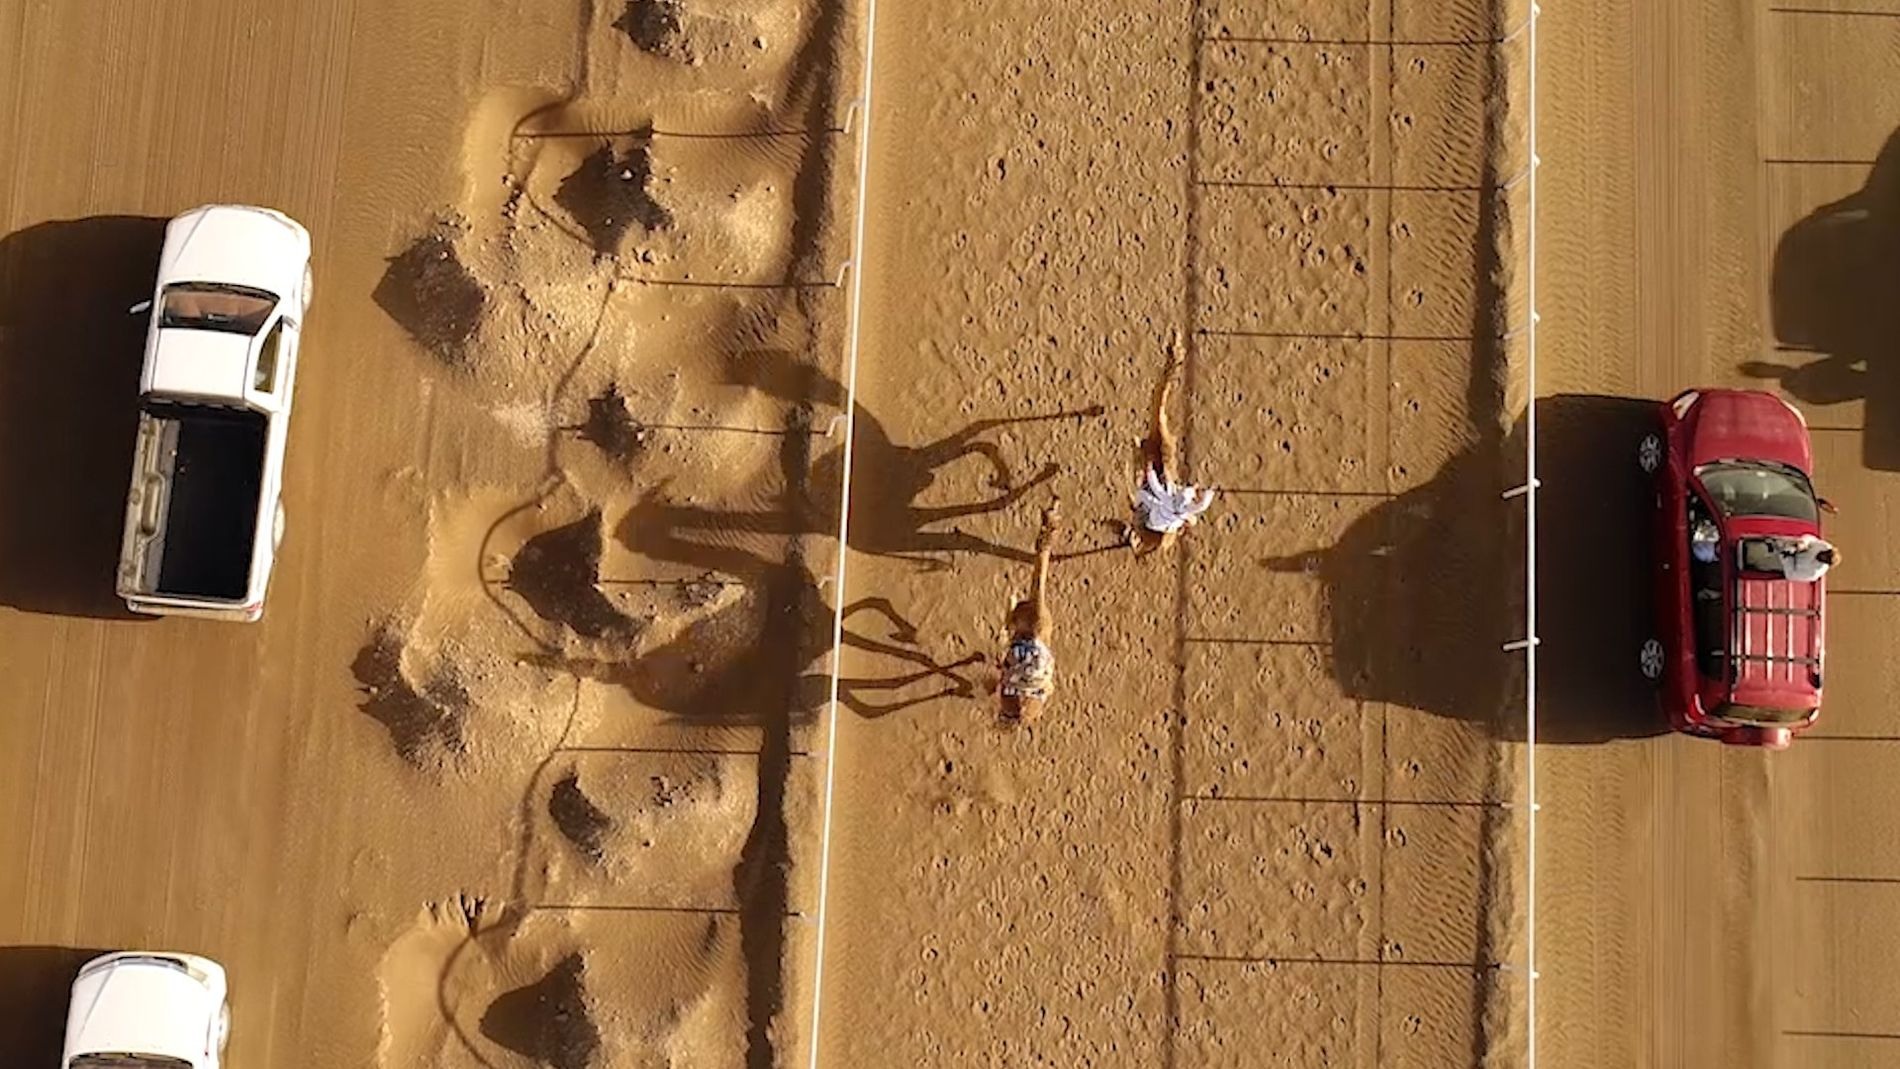 The Ancient Tradition of Camel Racing, as Seen From Above